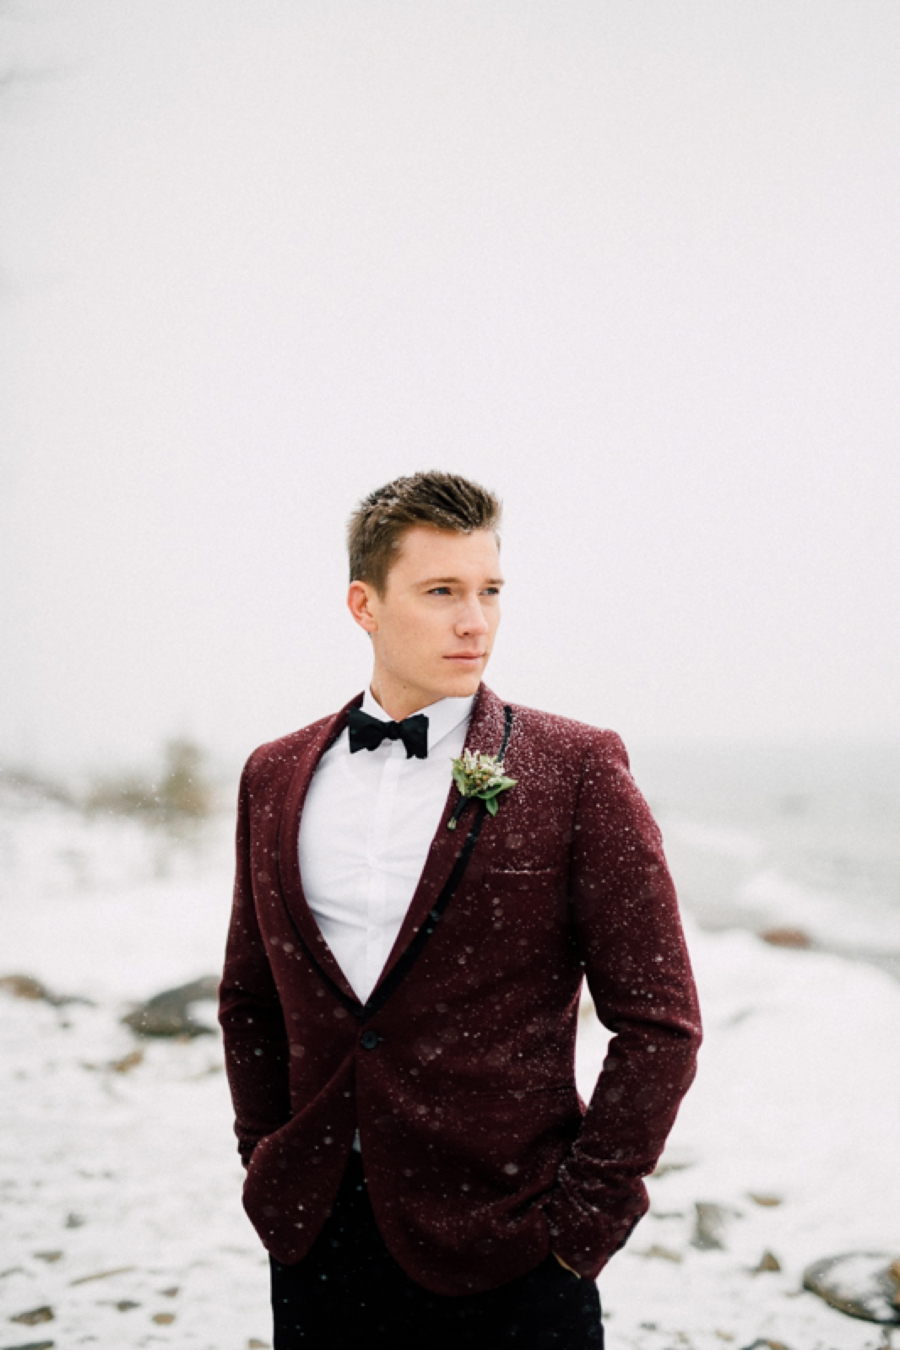 Groom-Style-Winter-Wedding